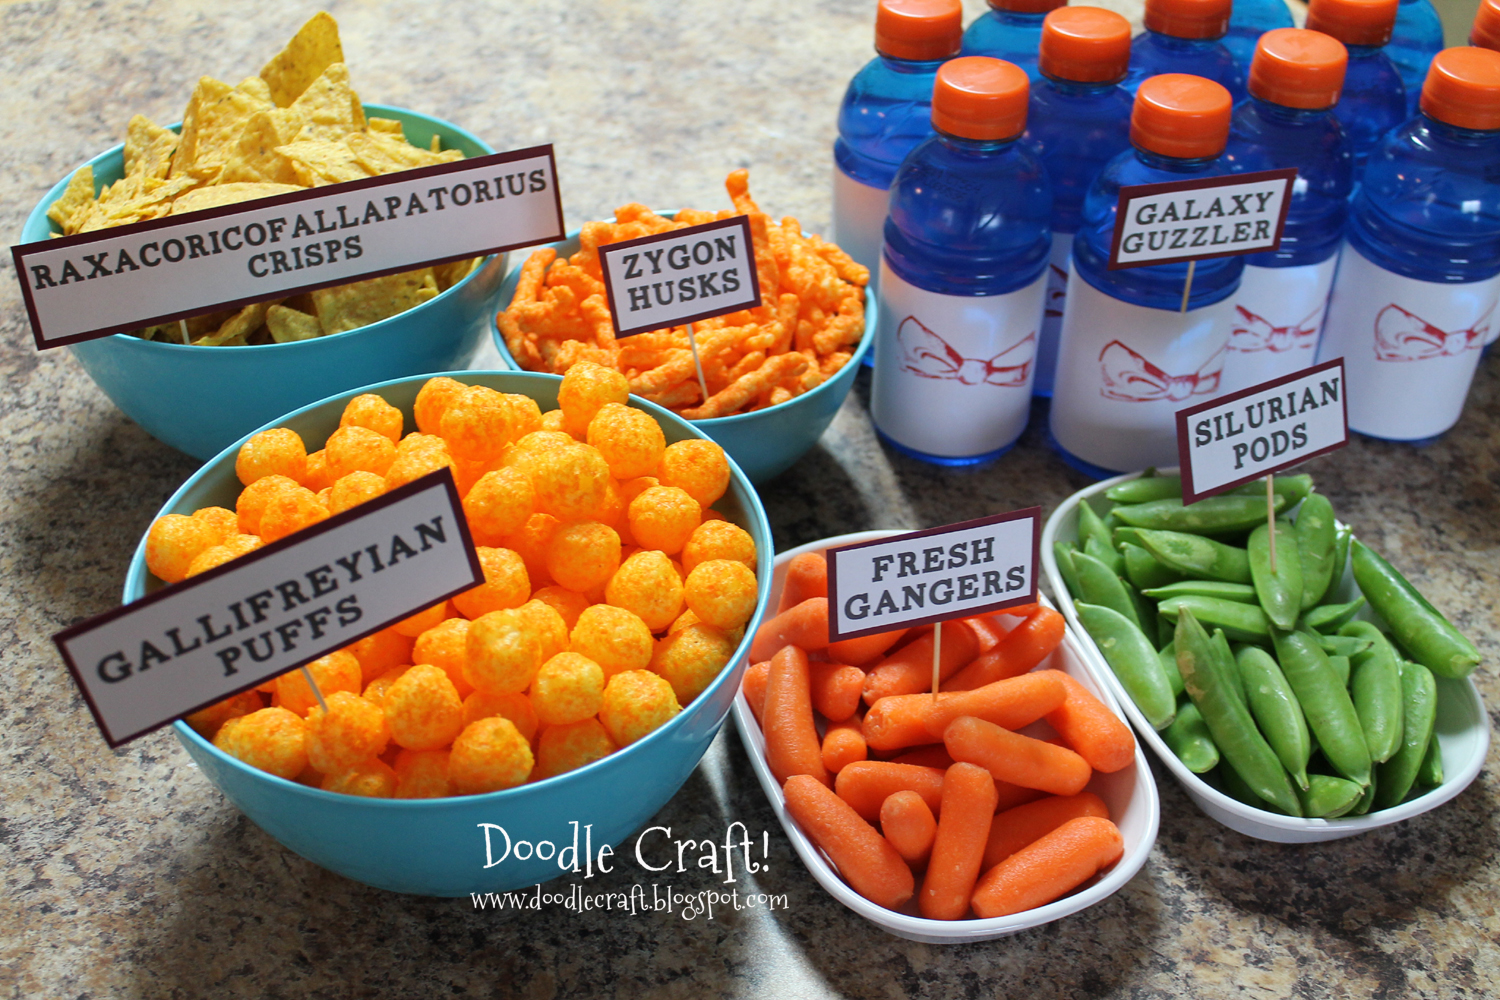 doodlecraft doctor who party week food snacks recipes and treats. Black Bedroom Furniture Sets. Home Design Ideas